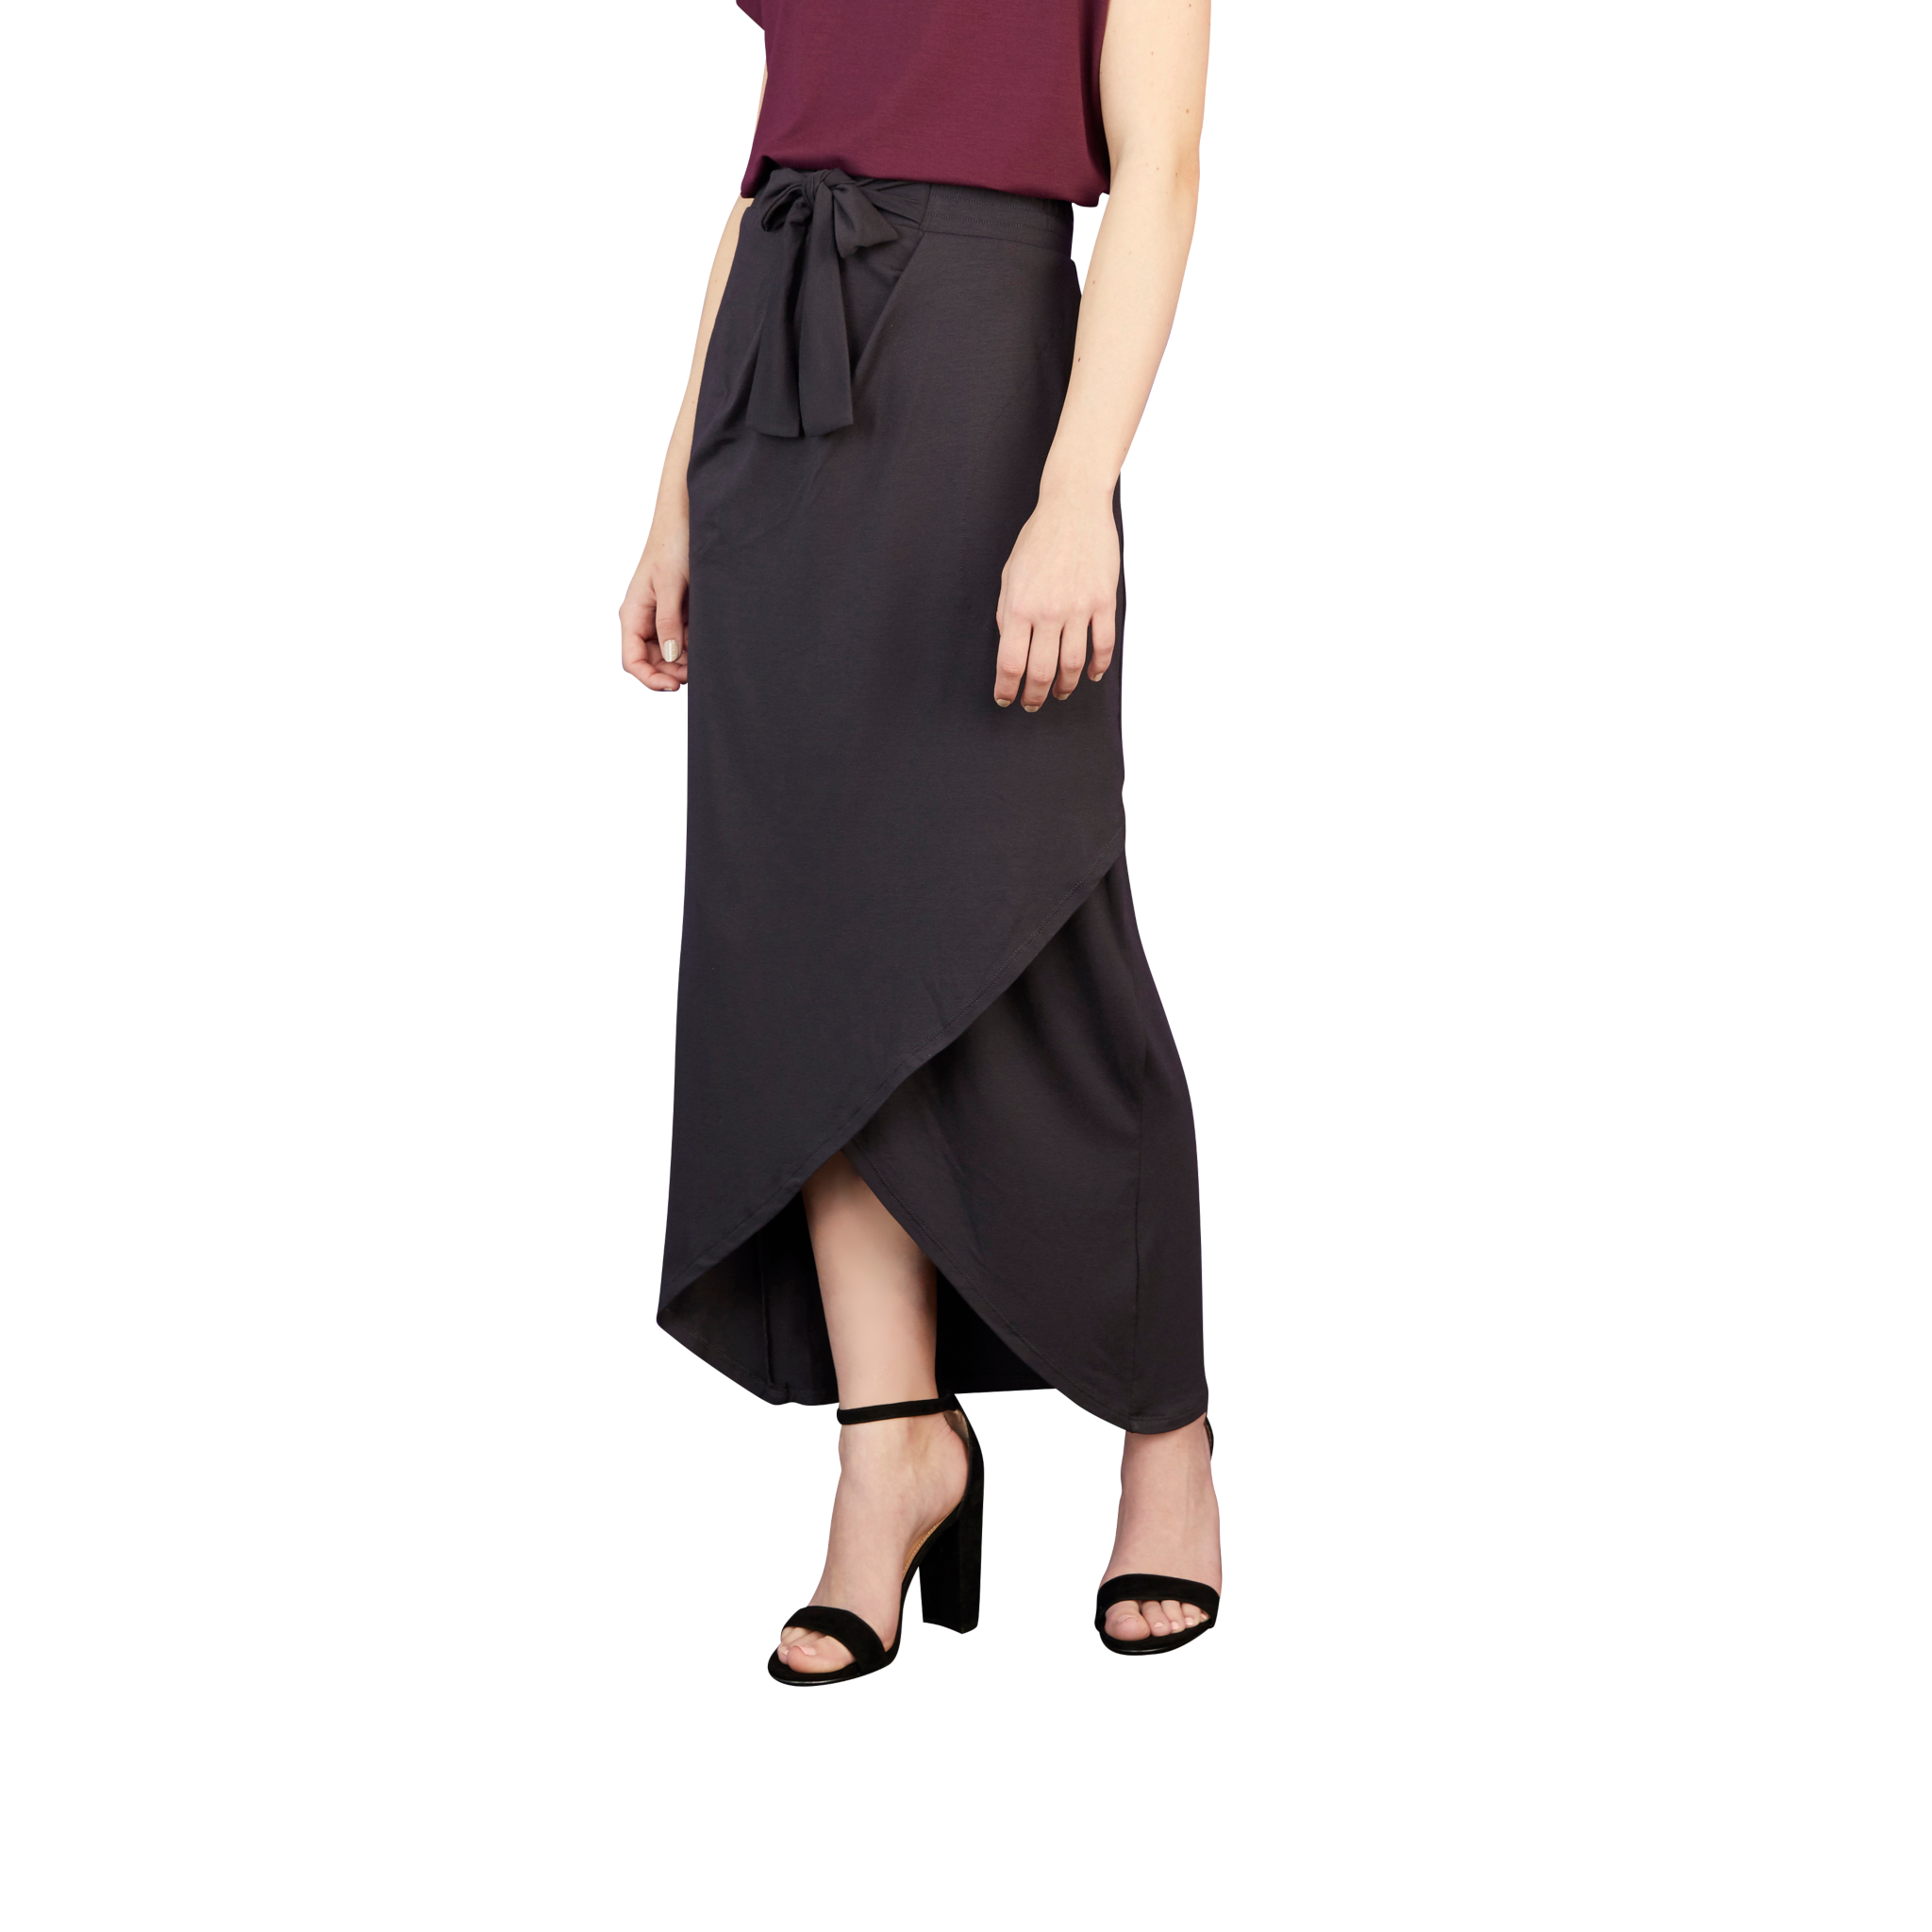 Juliette Skirt - Sale